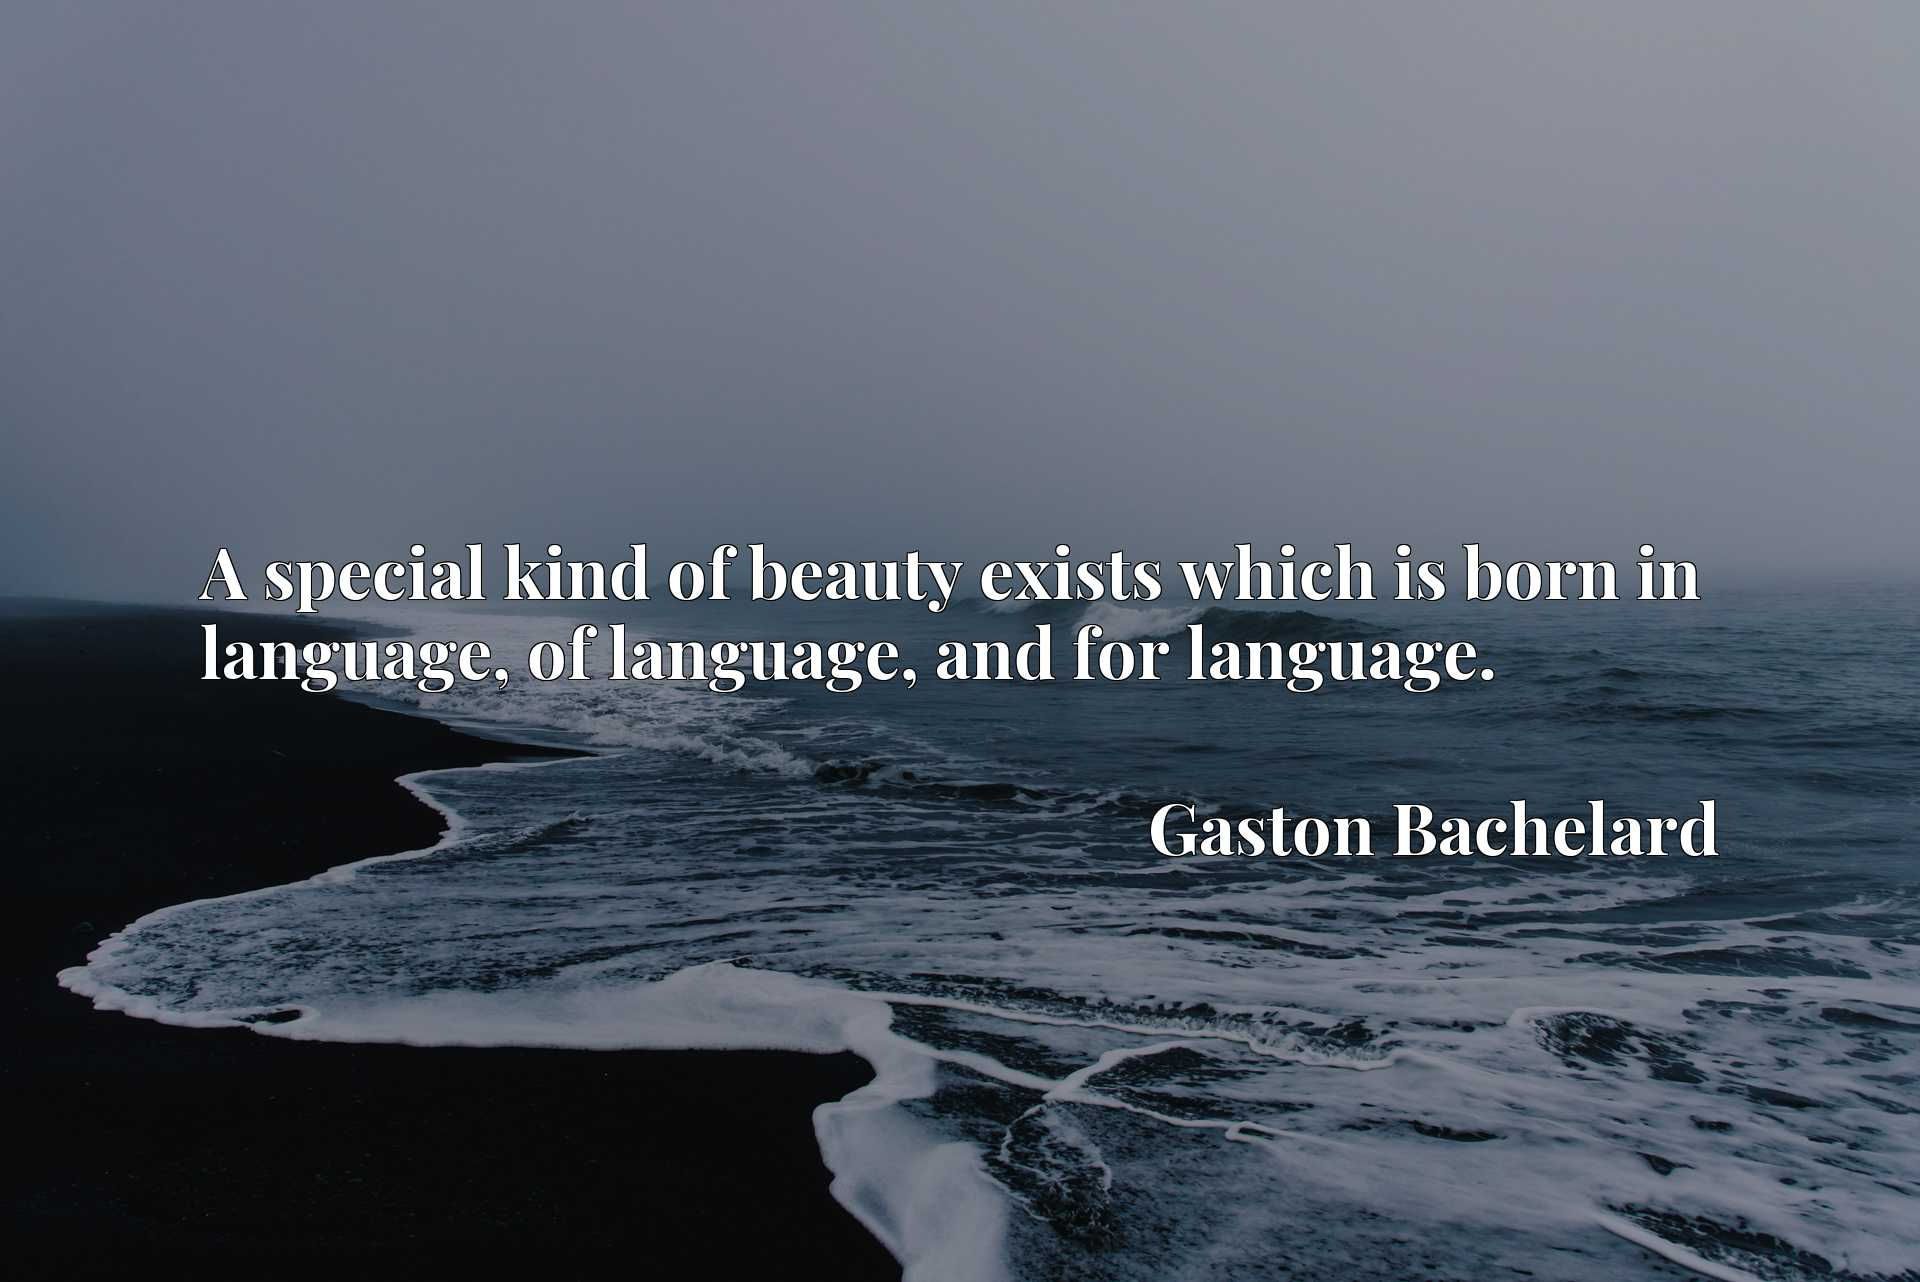 A special kind of beauty exists which is born in language, of language, and for language.